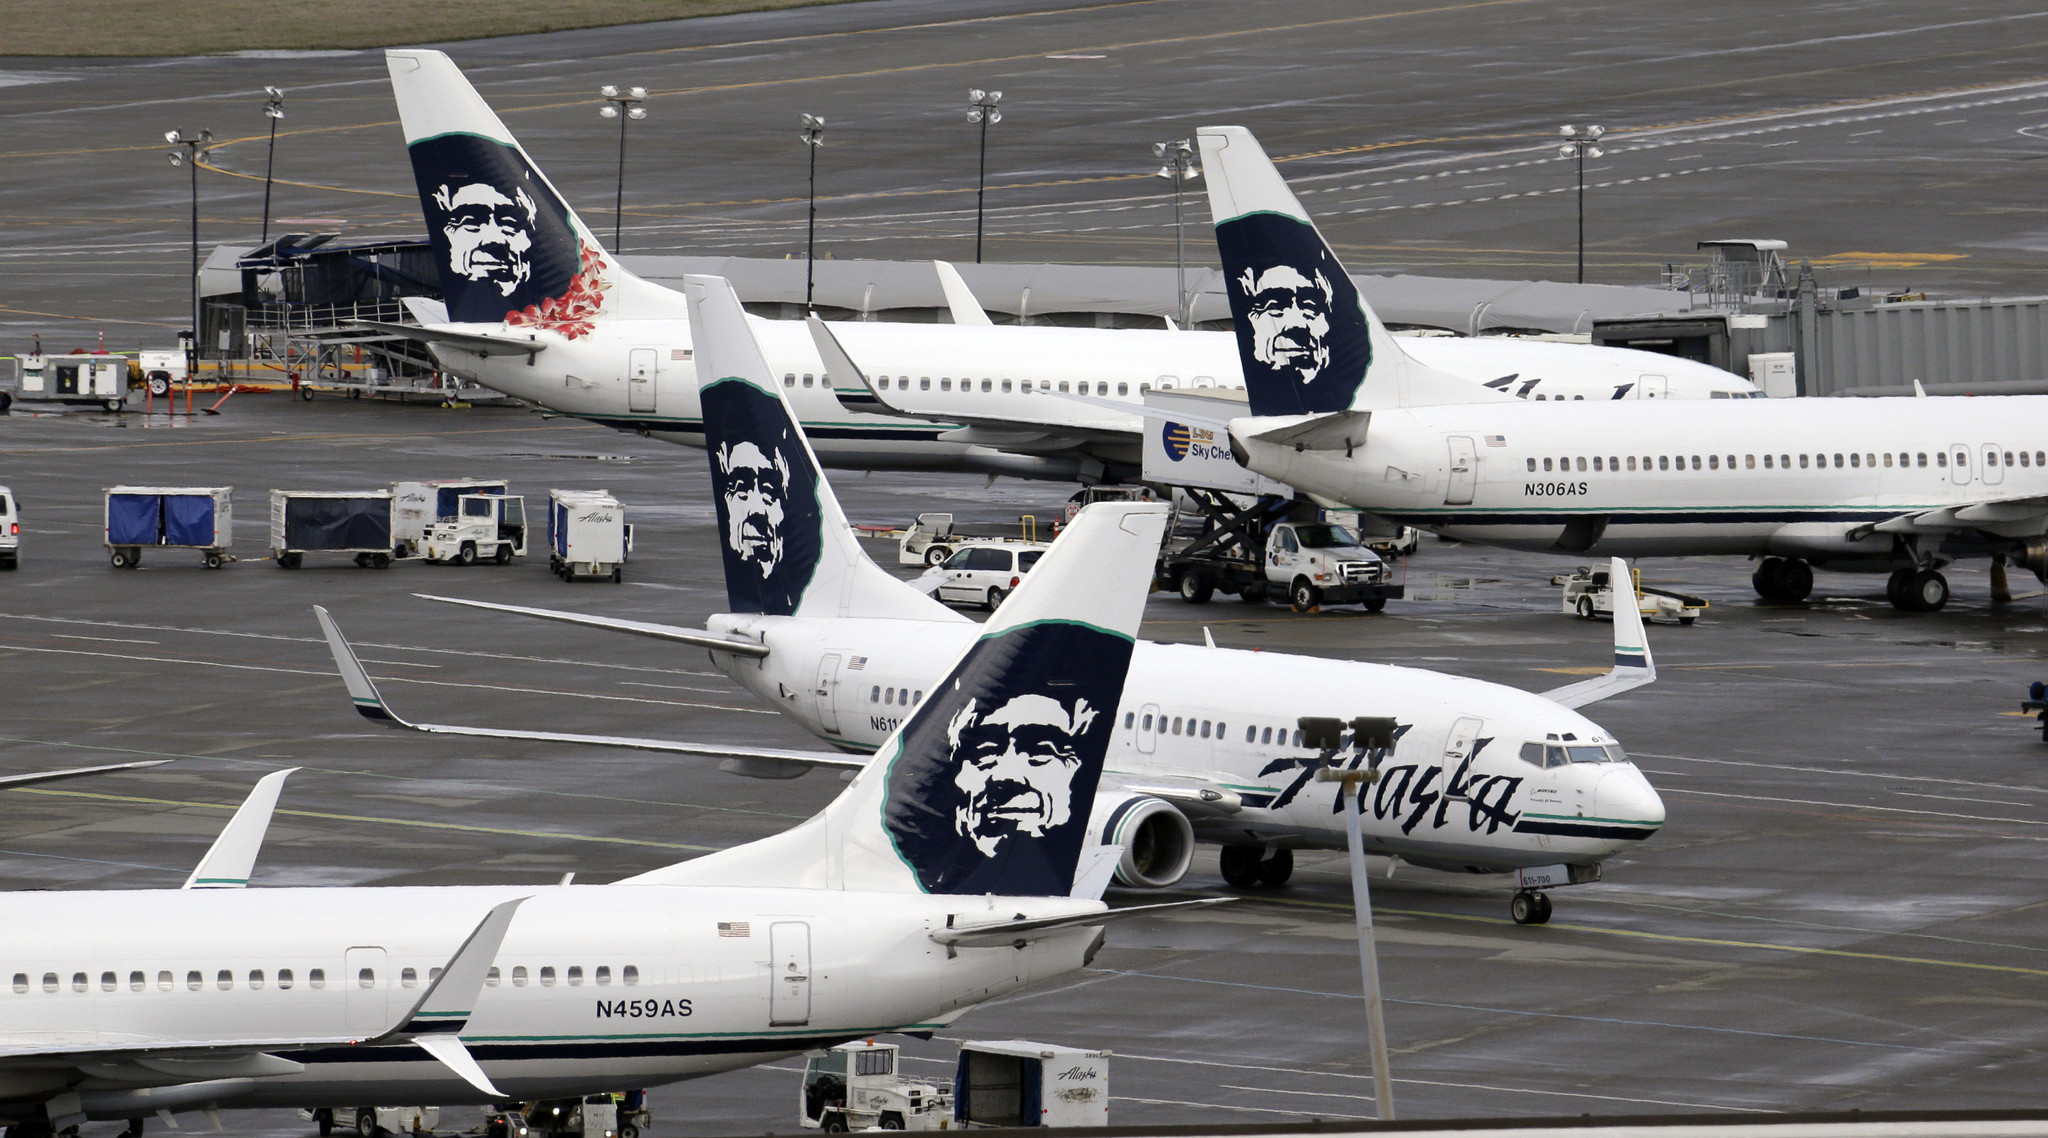 Former Alaska Airlines Pilot Charged With Flying While